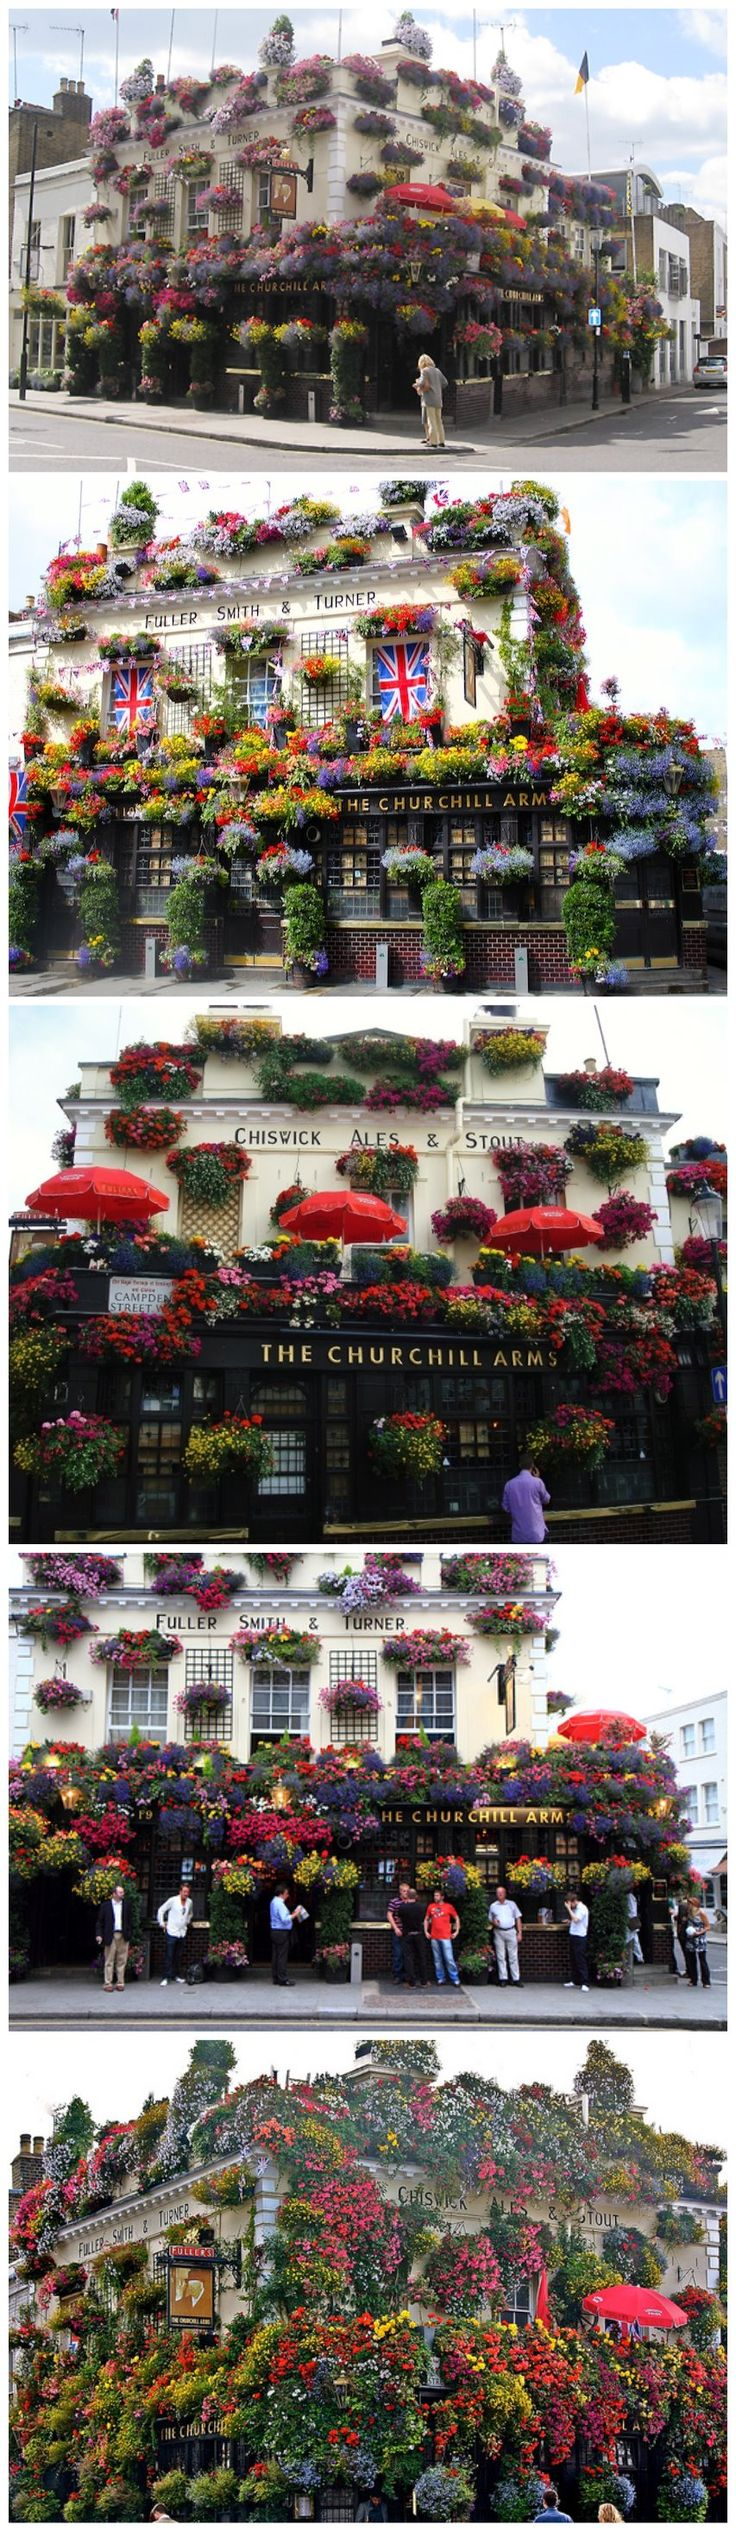 The Churchill Arms lays a genuine claim to being London's most famous watering hole. Built in 1750, this Kensington pub was once frequented by Winston Churchill's grandparents - and it's now the preferred haunt of many a modern day celebrity.